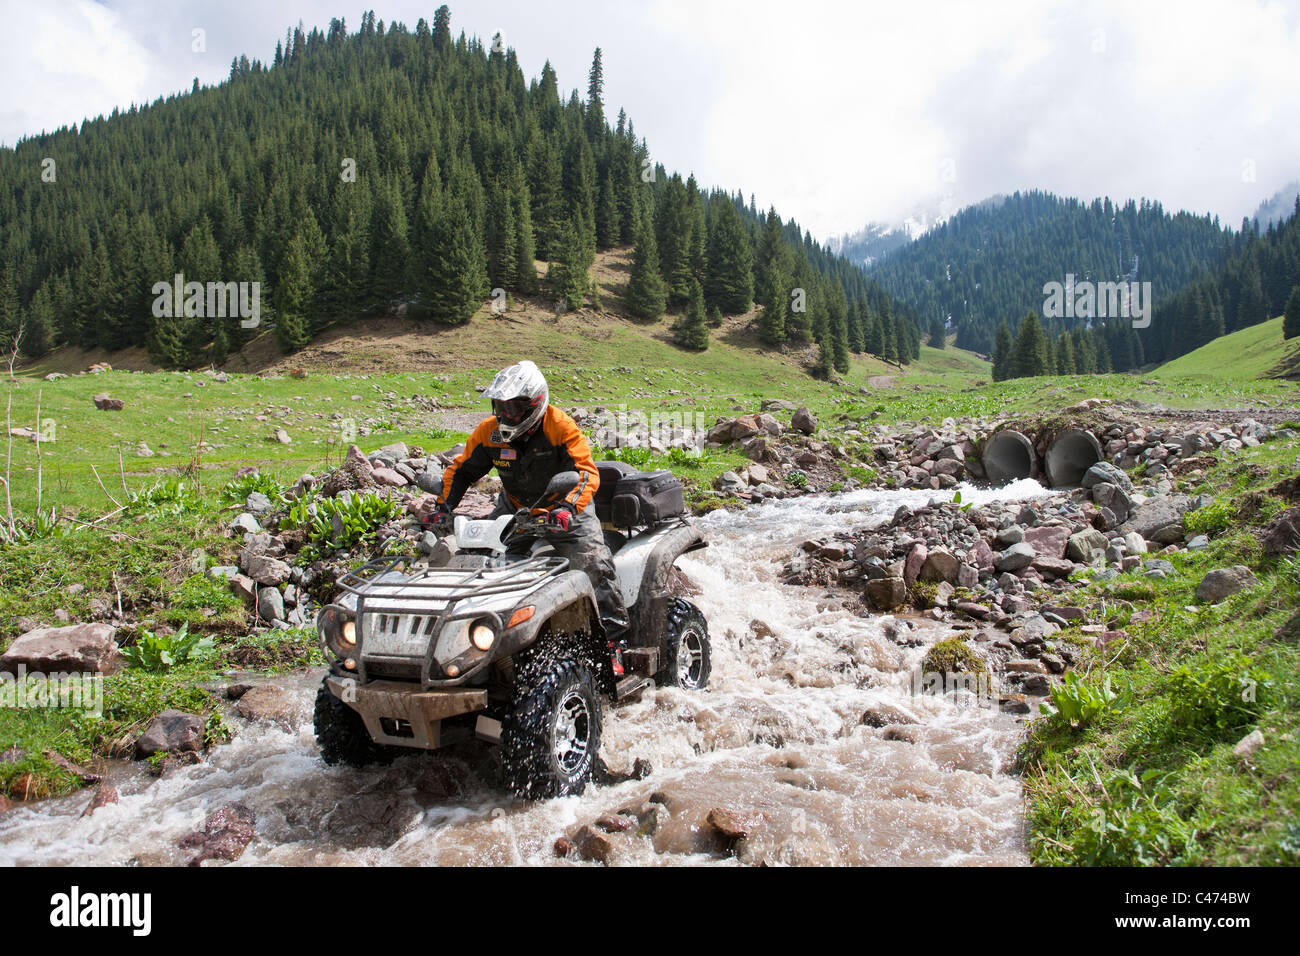 Kazakhstan. A motor-cyclist is in mountains - Stock Image